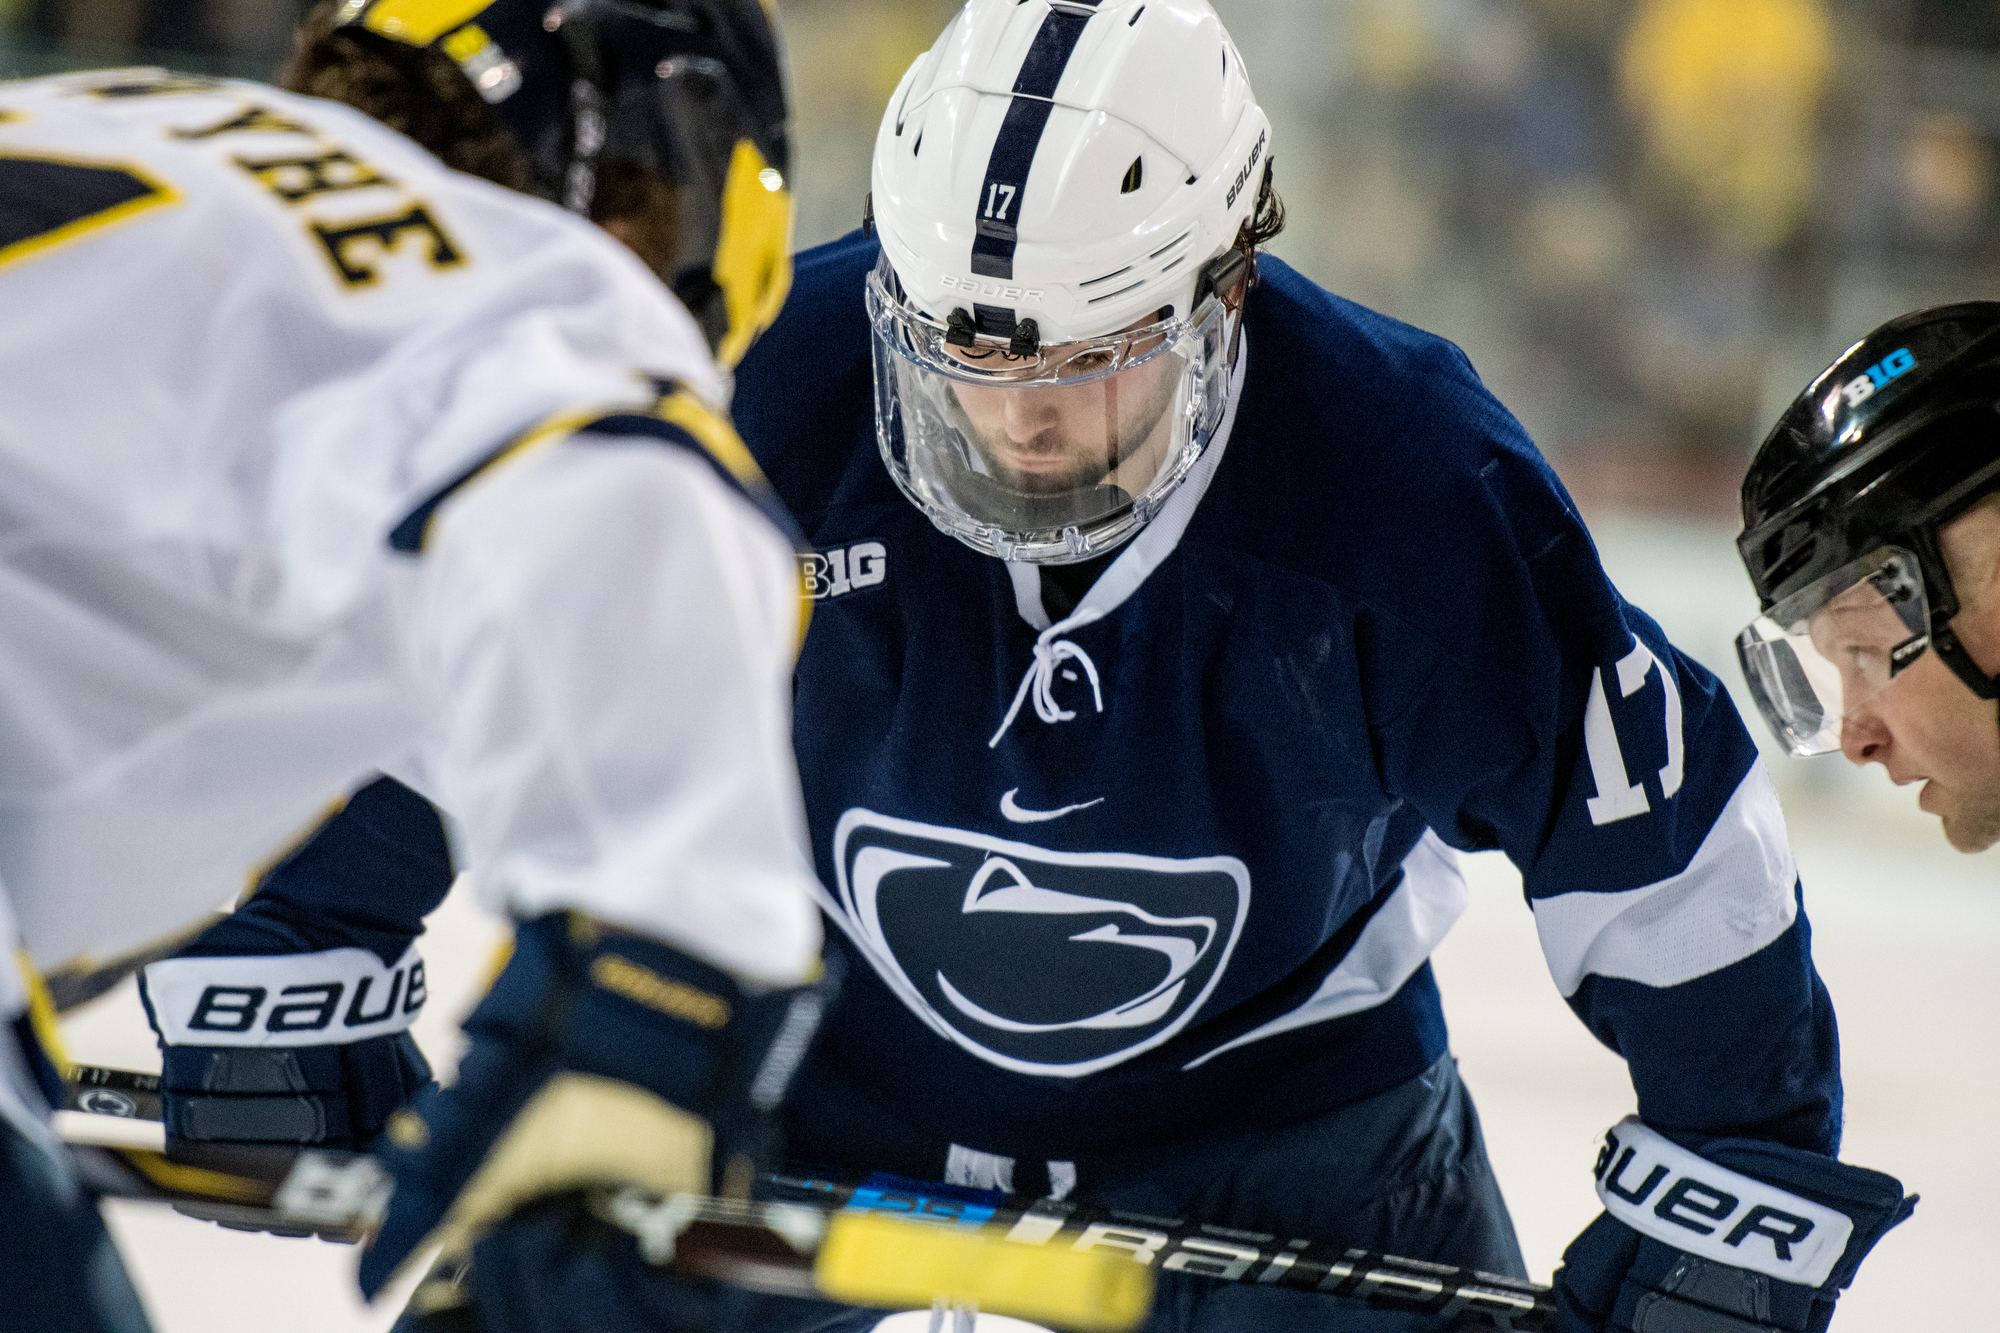 Penn State hockey crushed Ohio State 5-1 to earn Big Ten title date with Notre Dame